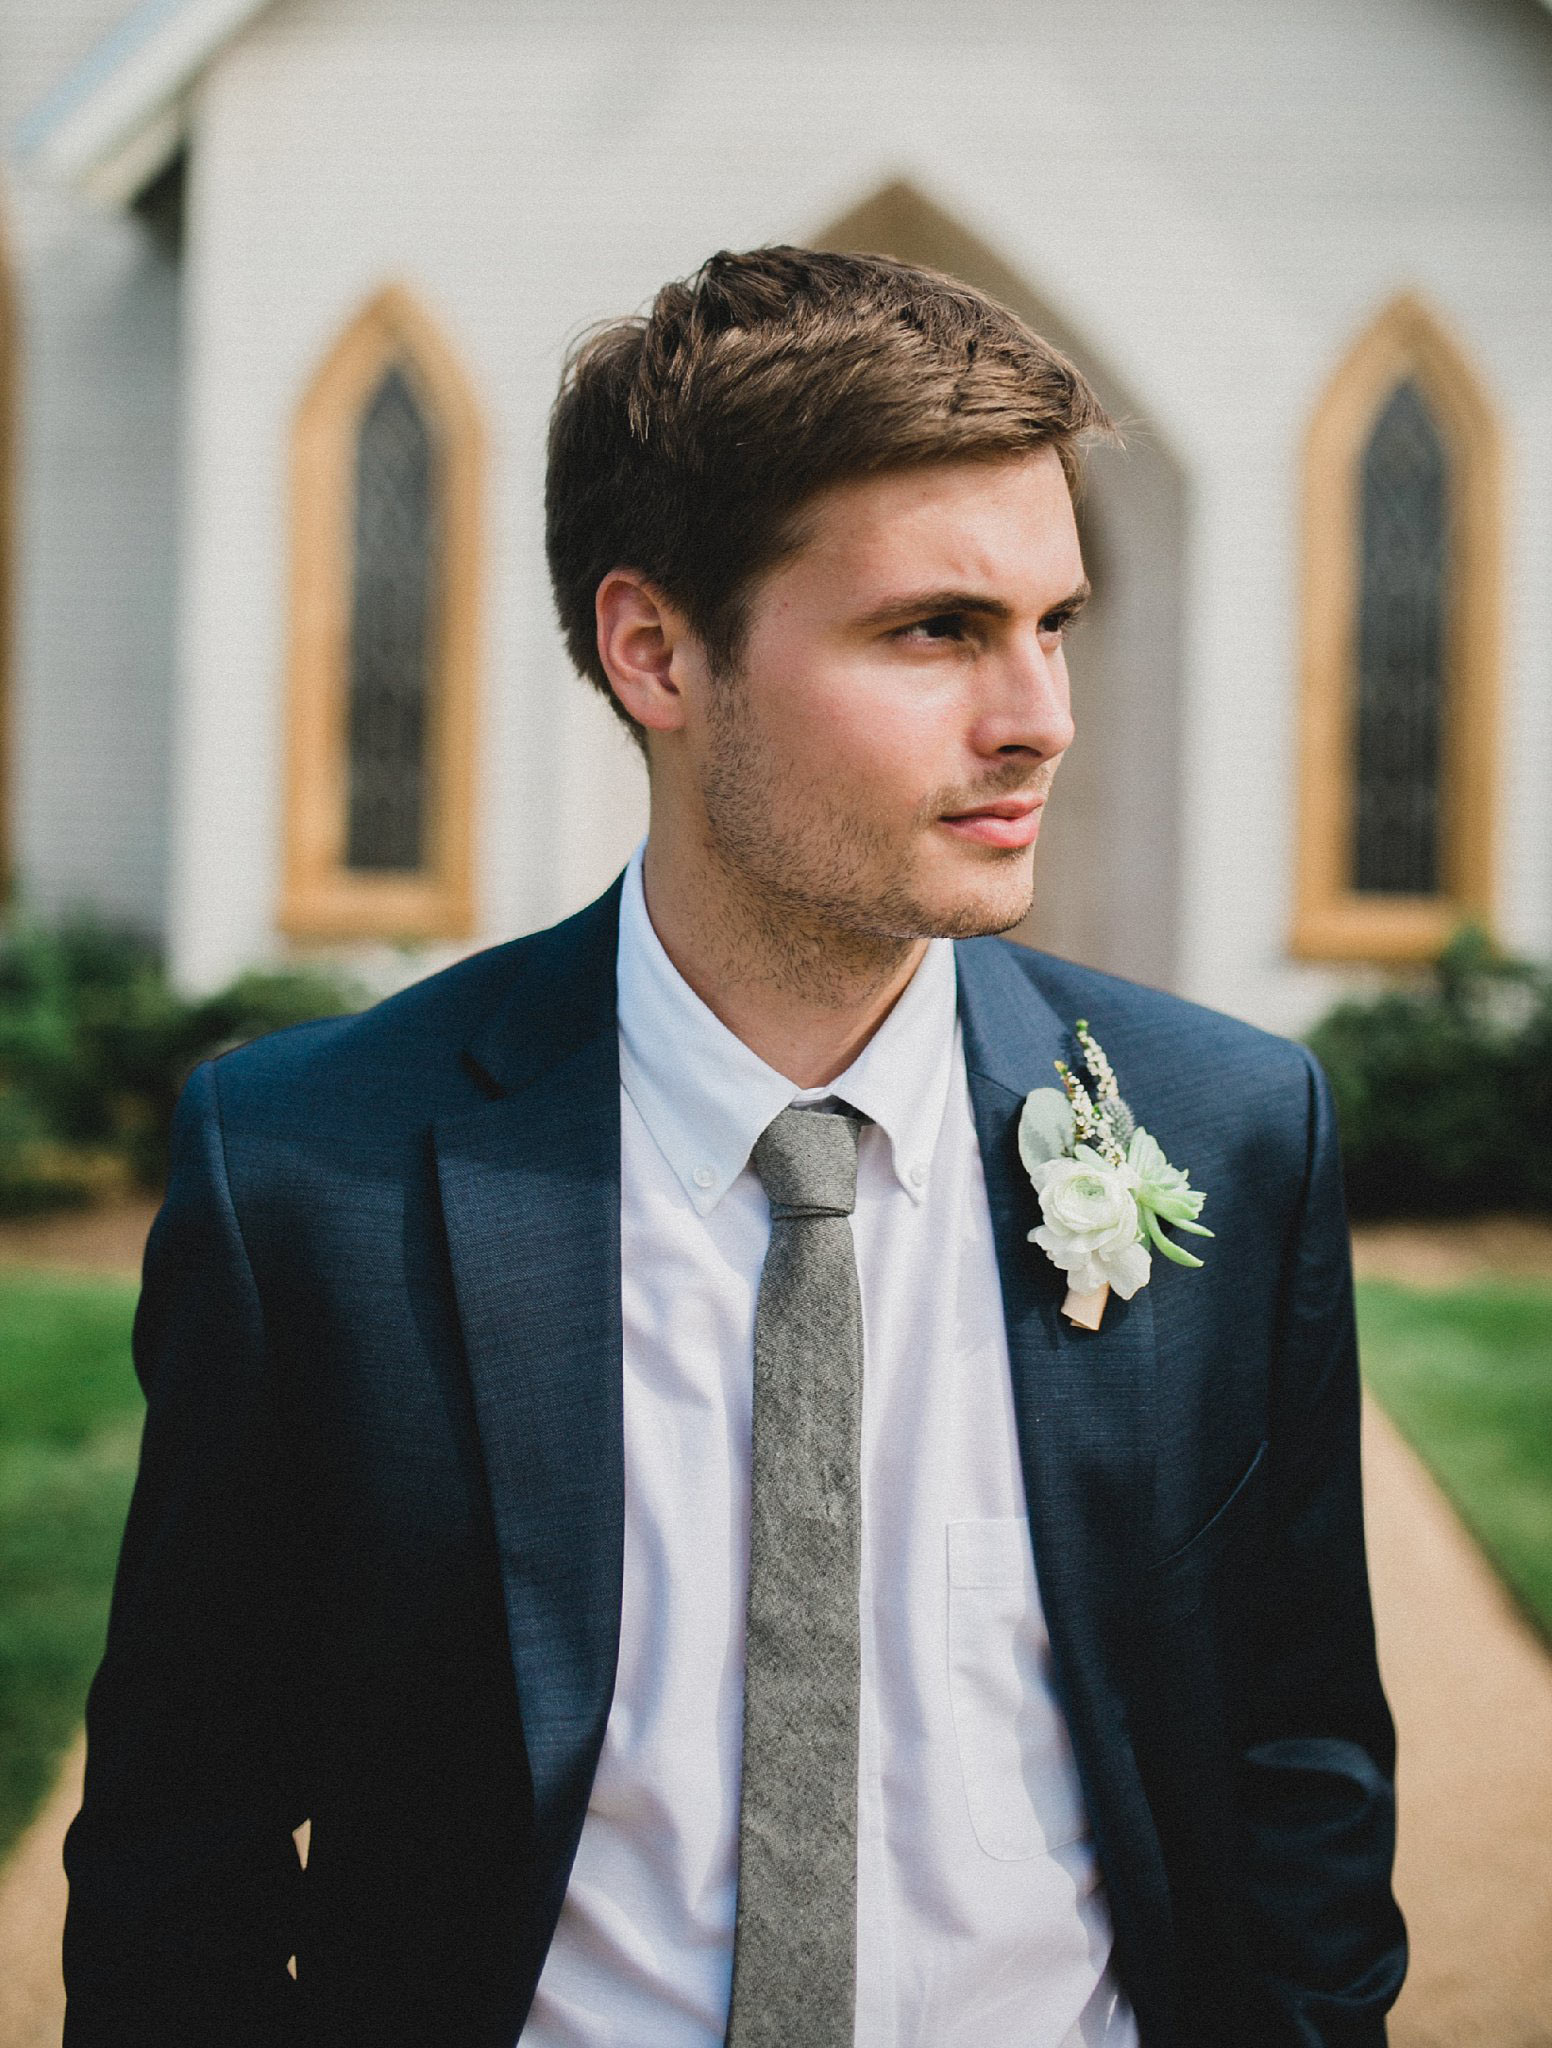 Groom in navy suite with succulent boutonniere